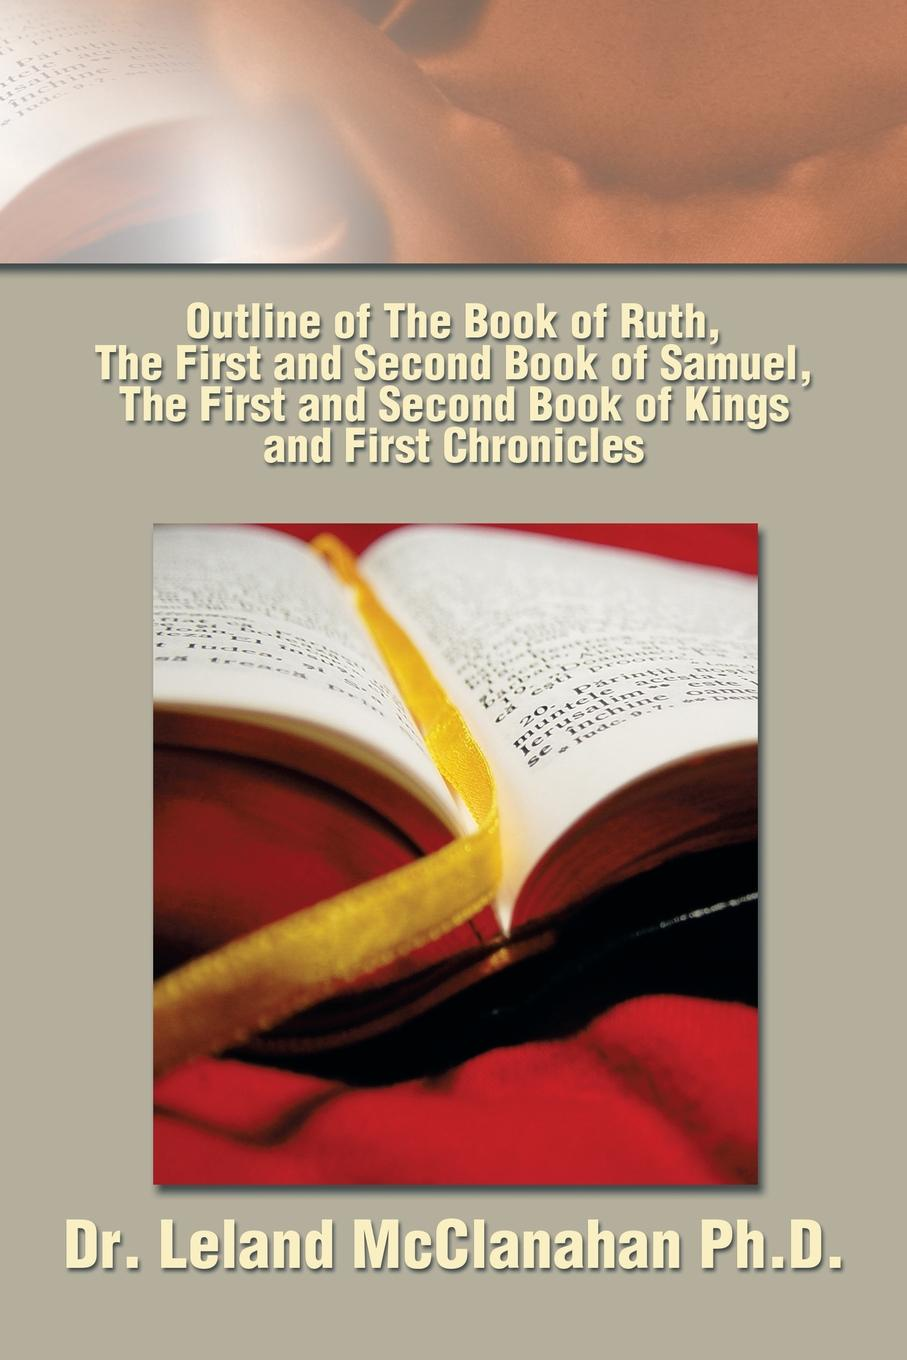 Leland McClanahan Outline of The Book of Ruth, The First and Second Book of Samuel, The First and Second Book of Kings and First Chronicles